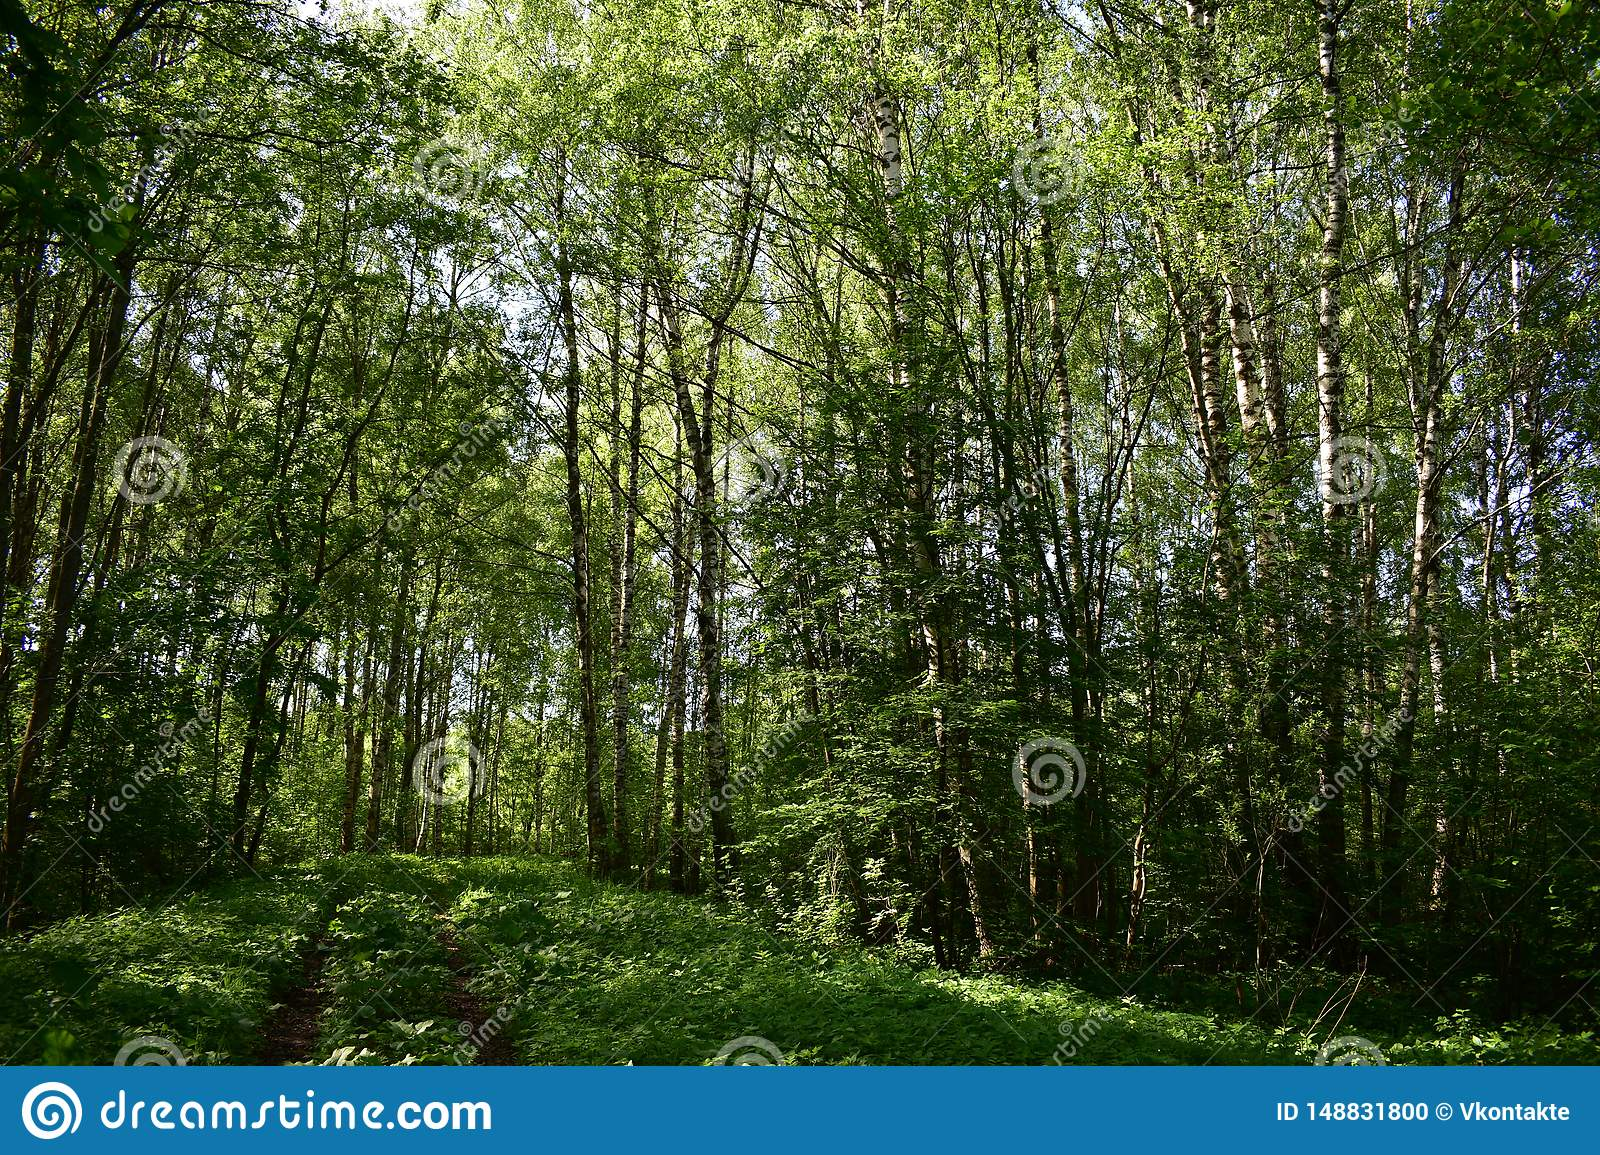 Colorful shady forest clear noon, bright sunlight, summer